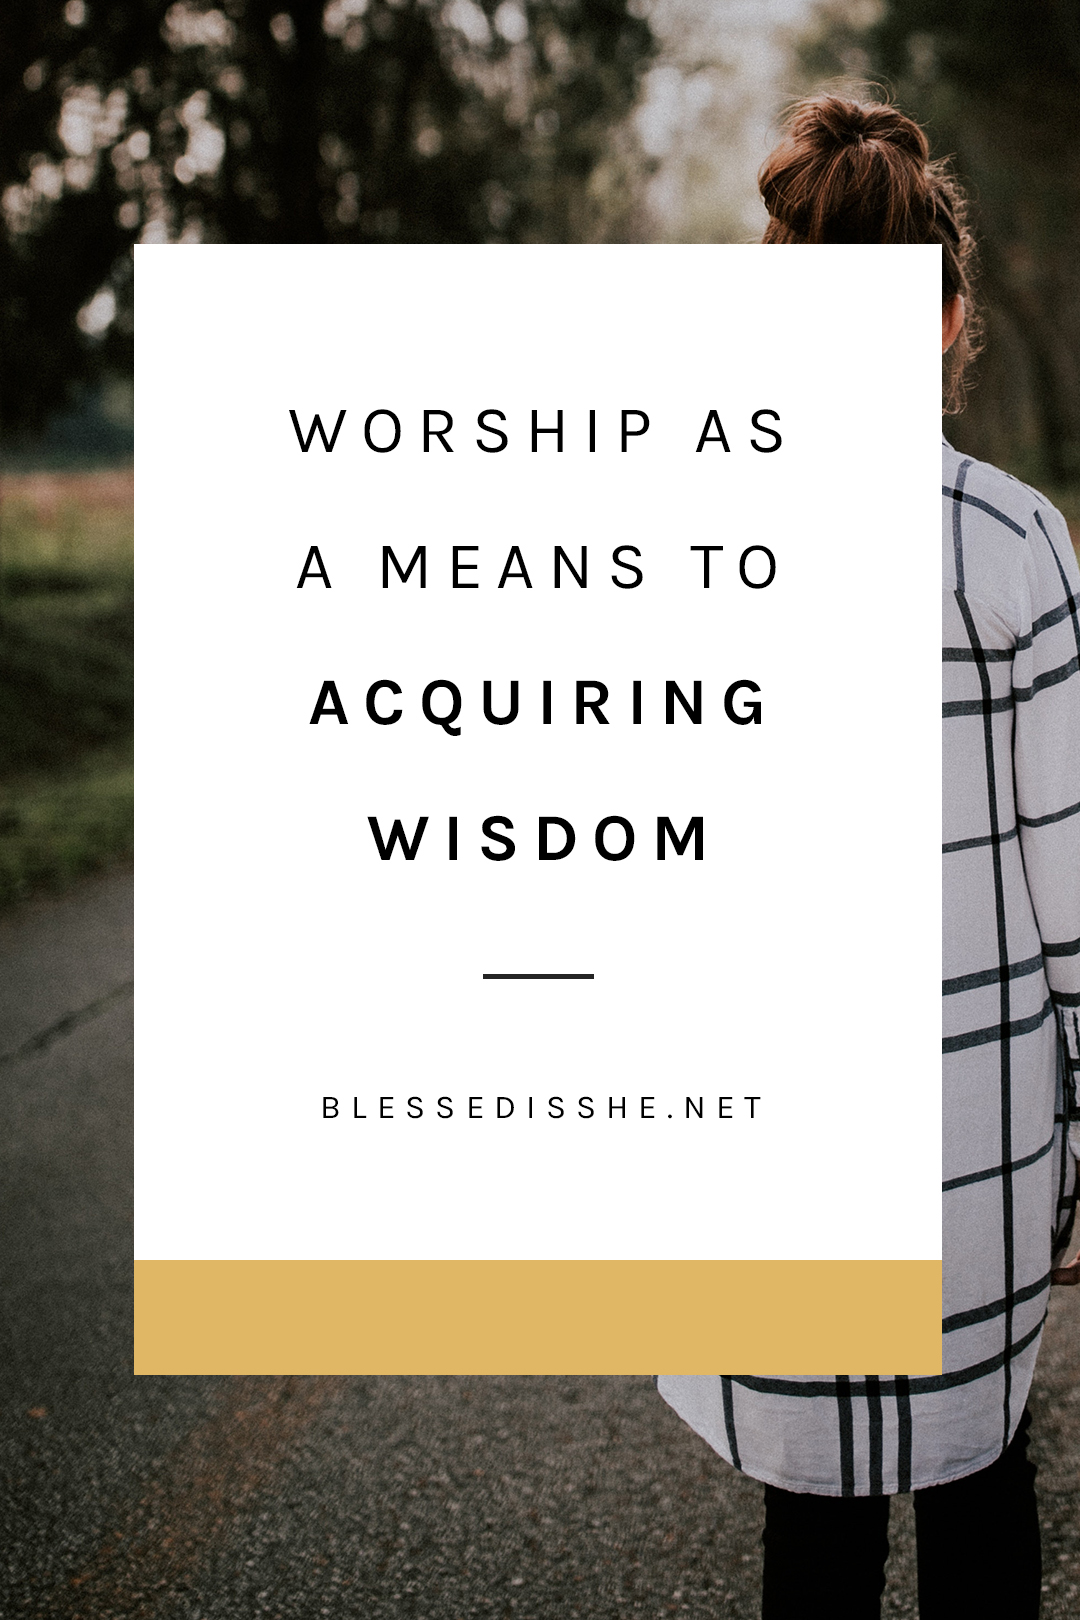 how worshipping god leads us to wisdom